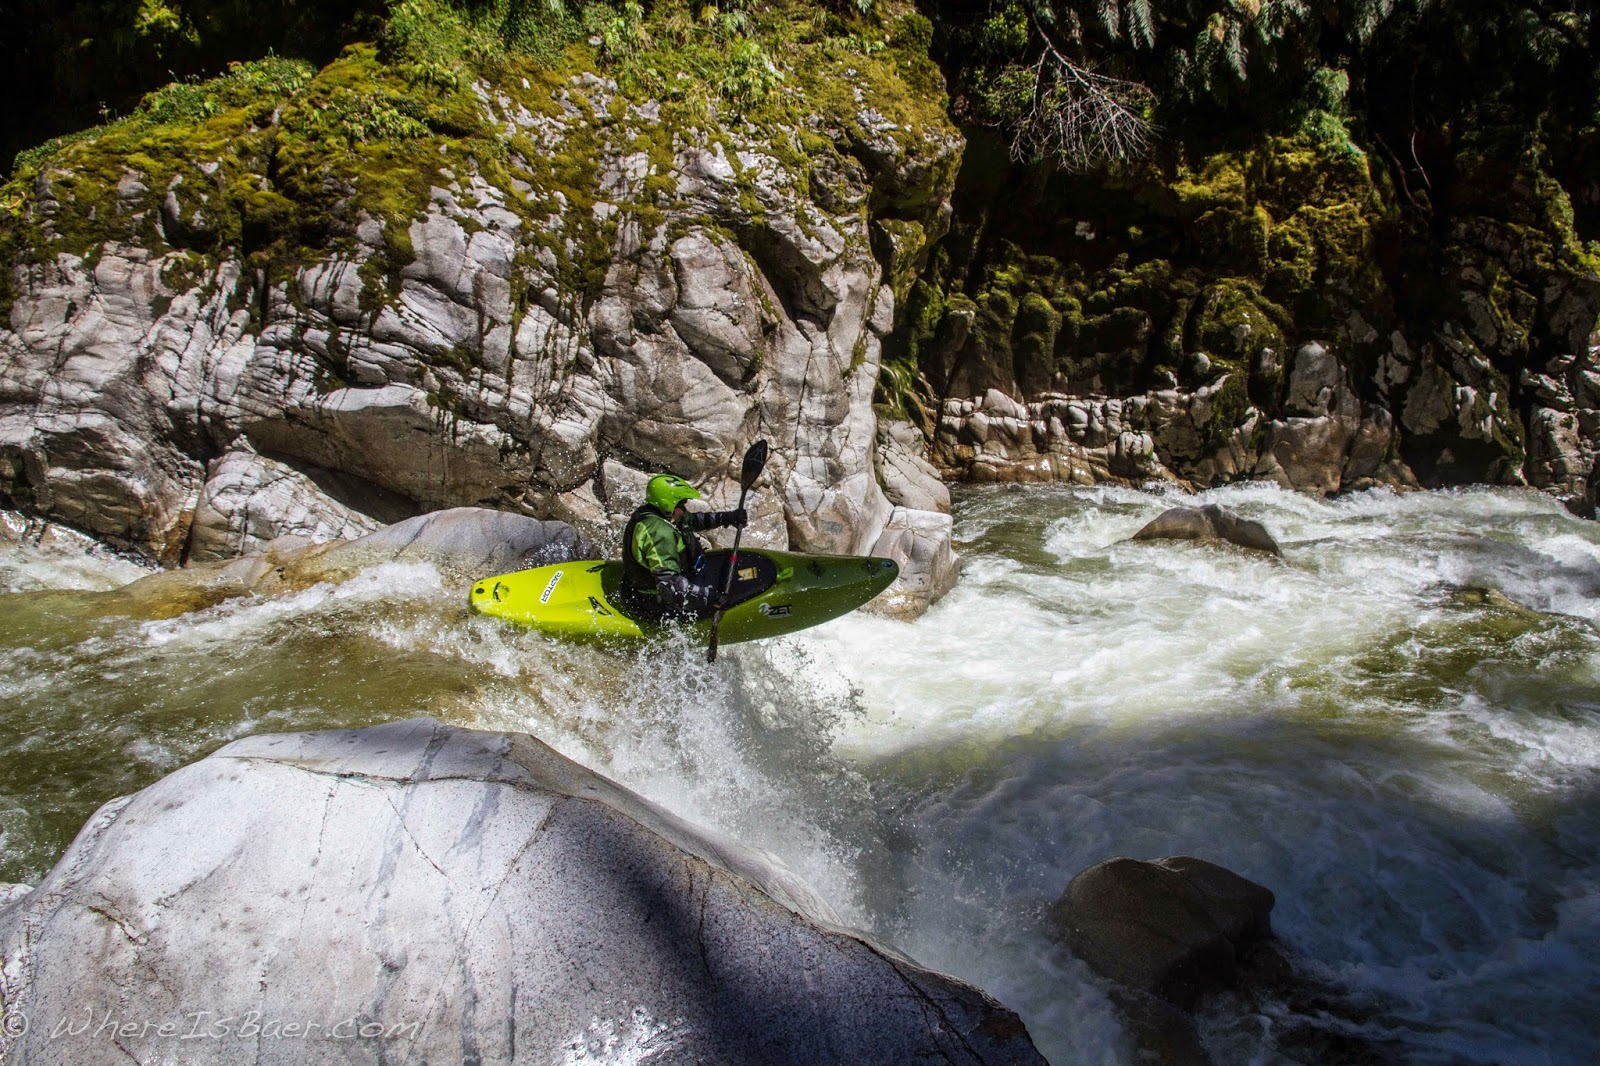 Kerry Hoglund enjoying the upper Kakers, Chris Baer, NZ,